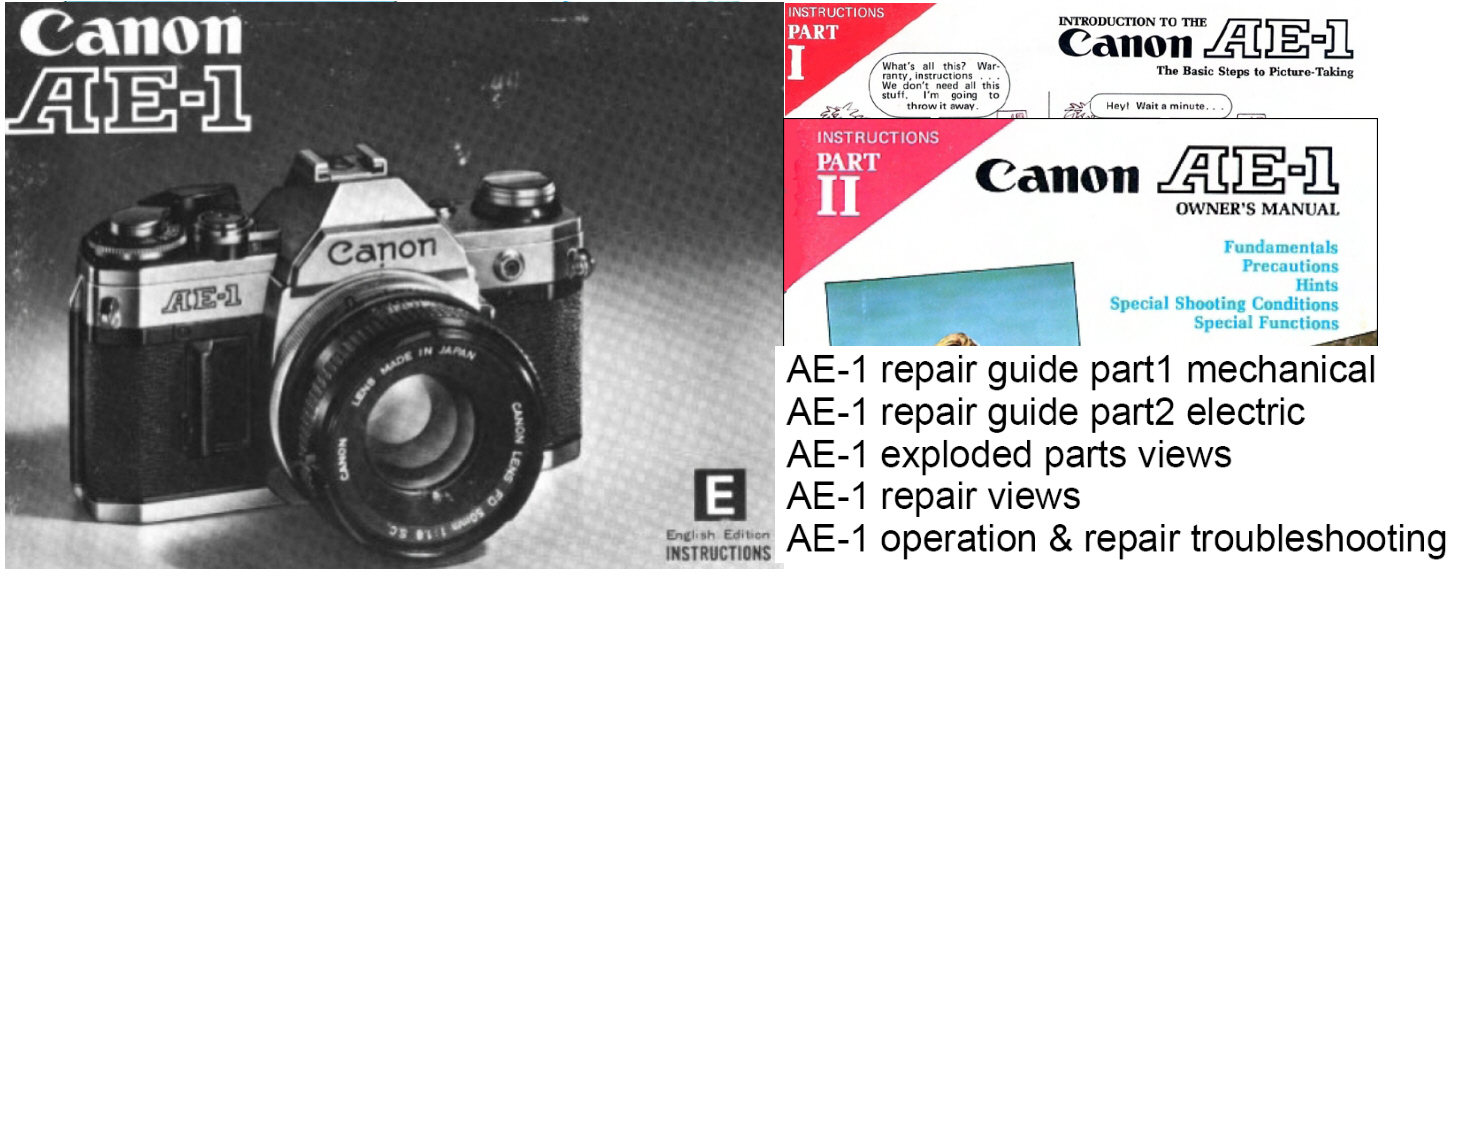 Canon AE-1 35mm Camera Repair Manuals and Instruction Manuals